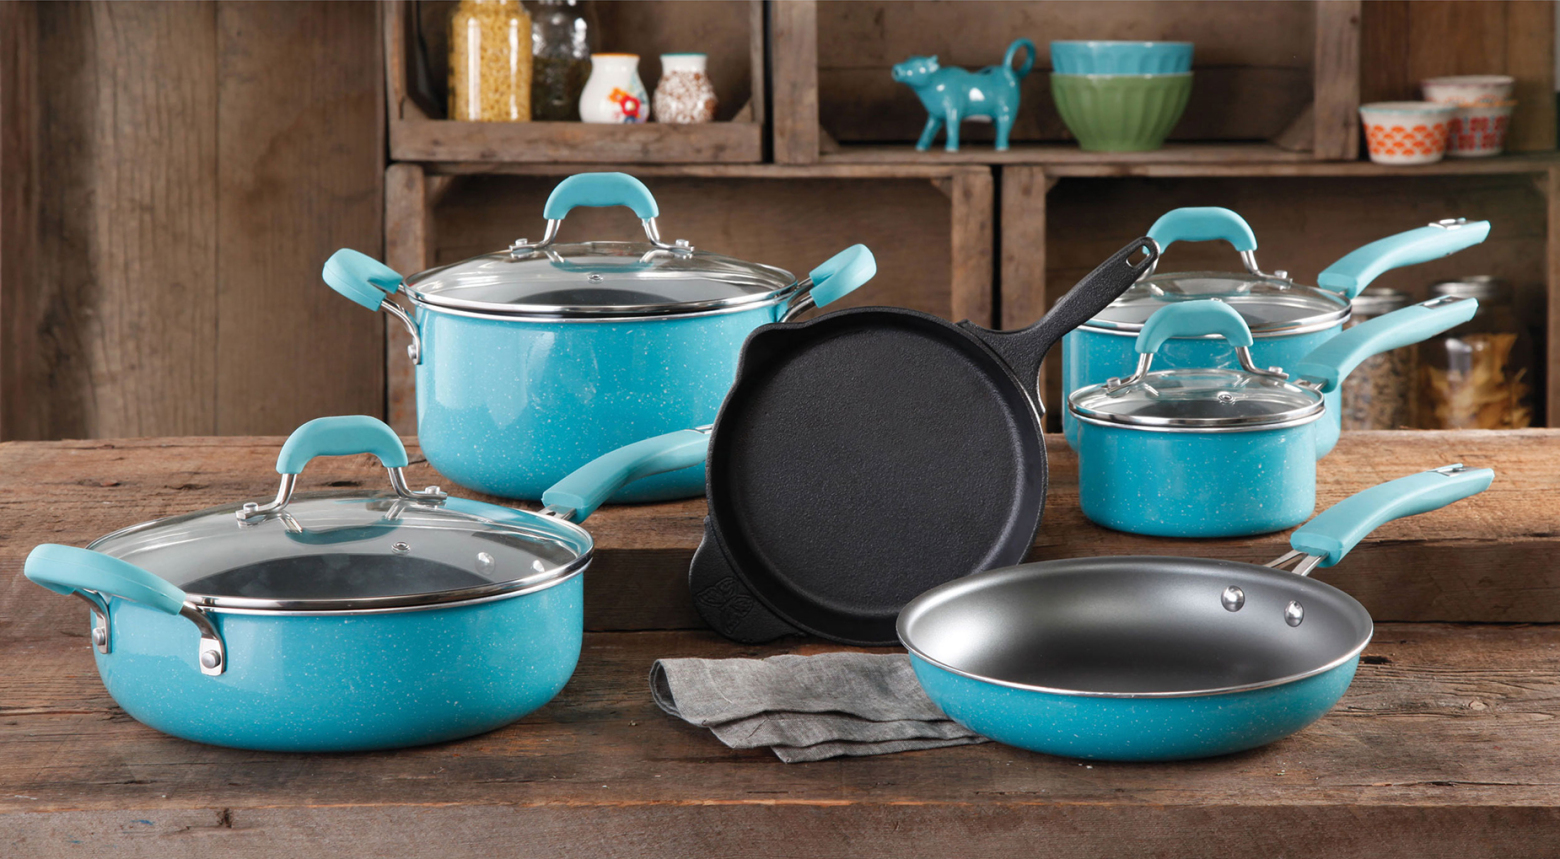 the-pioneer-woman-vintage-speckled-cookware-image